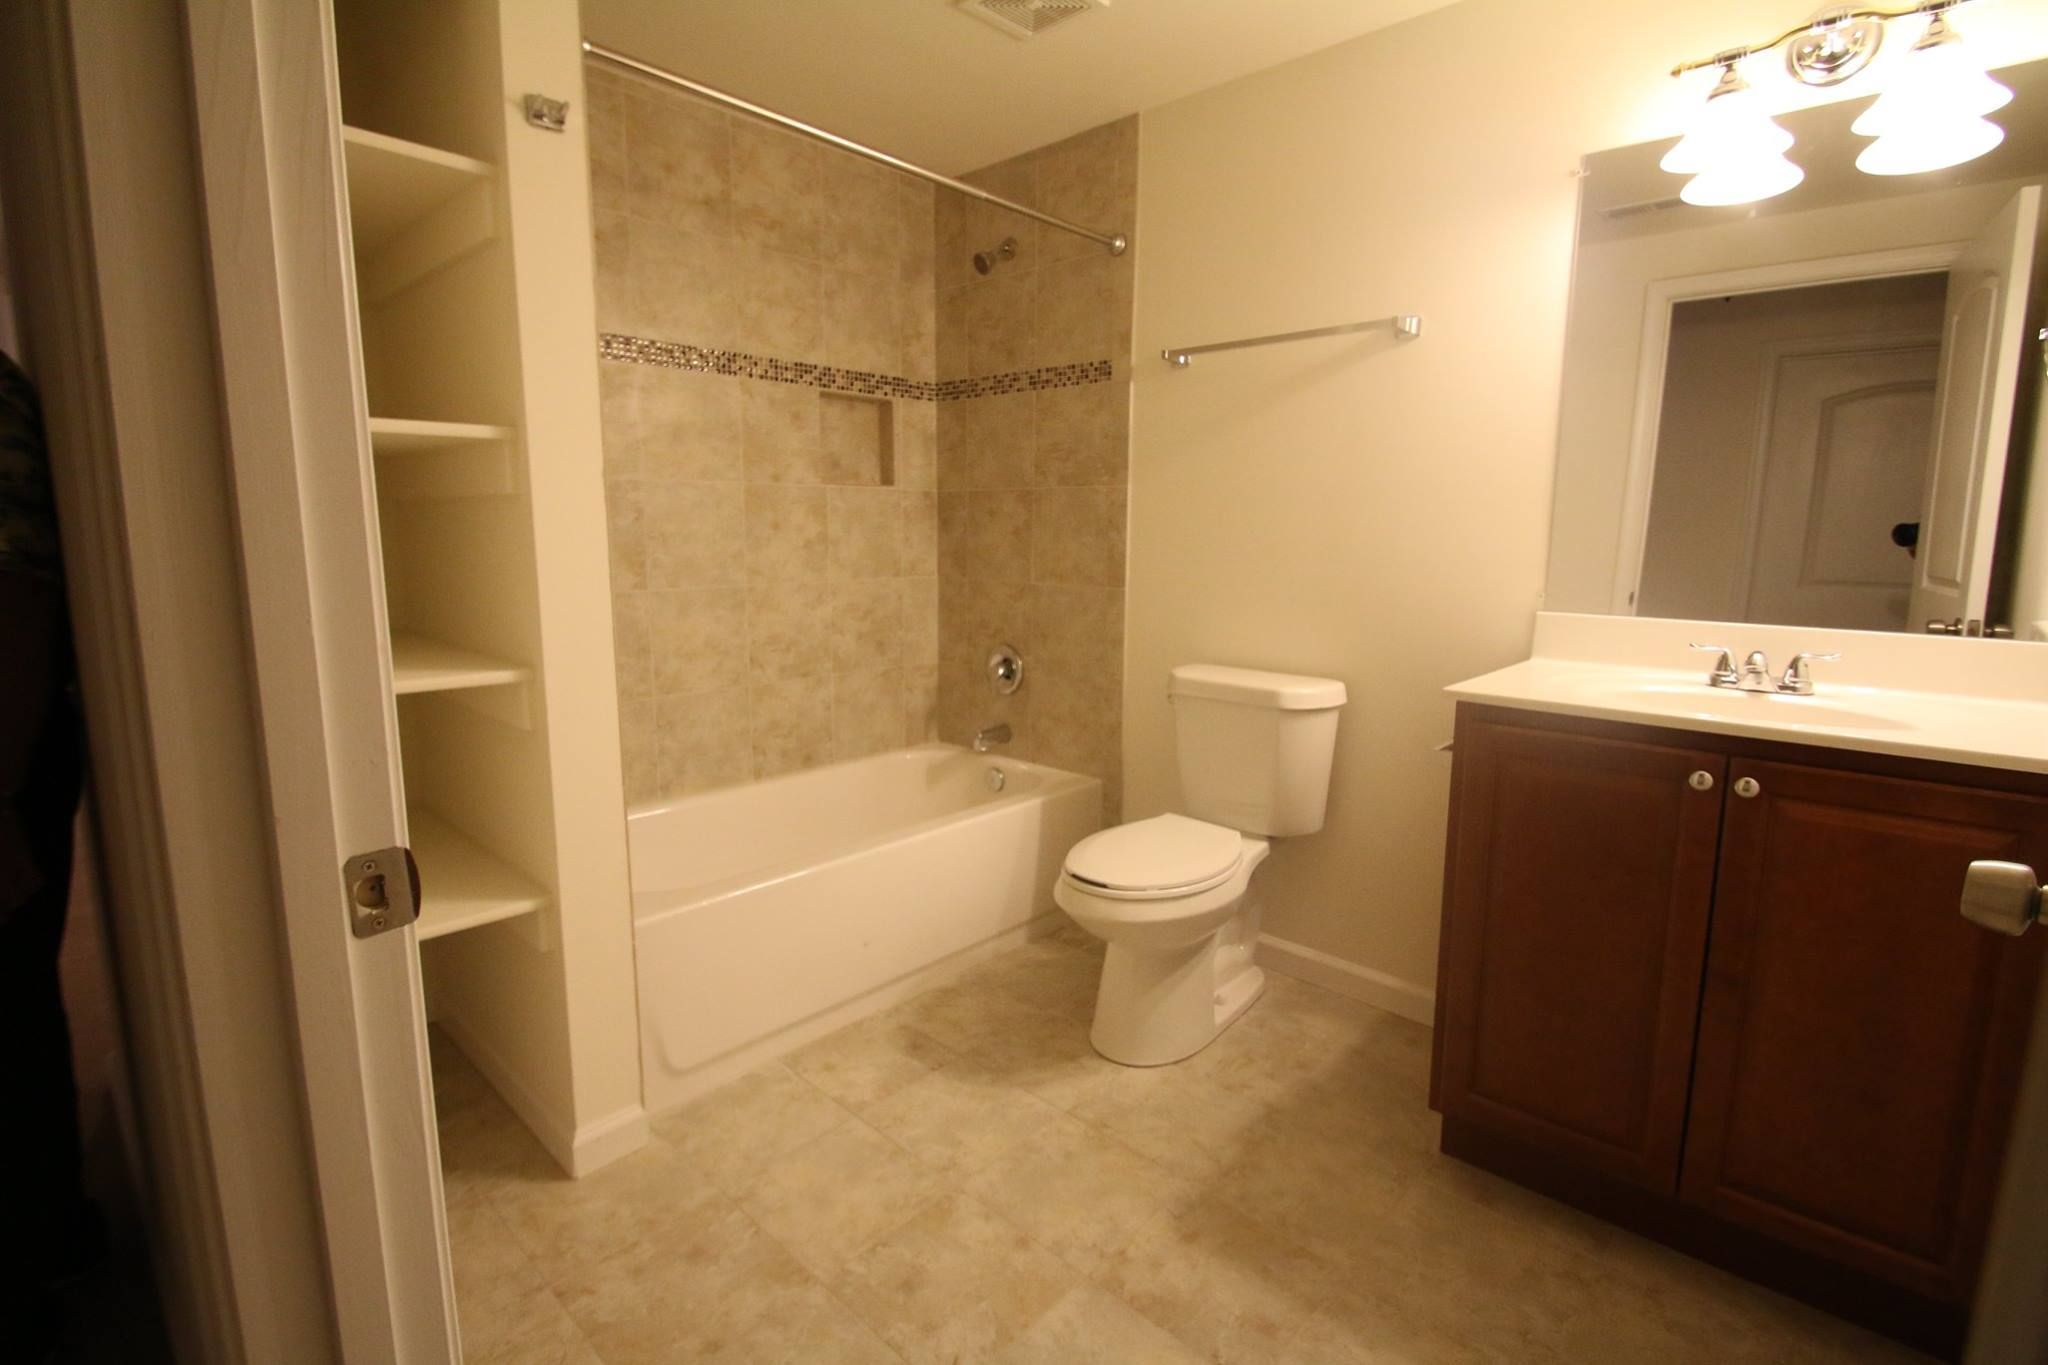 Dannex Construction Offers Designer Quality Bathroom Remodeling & Renovation At